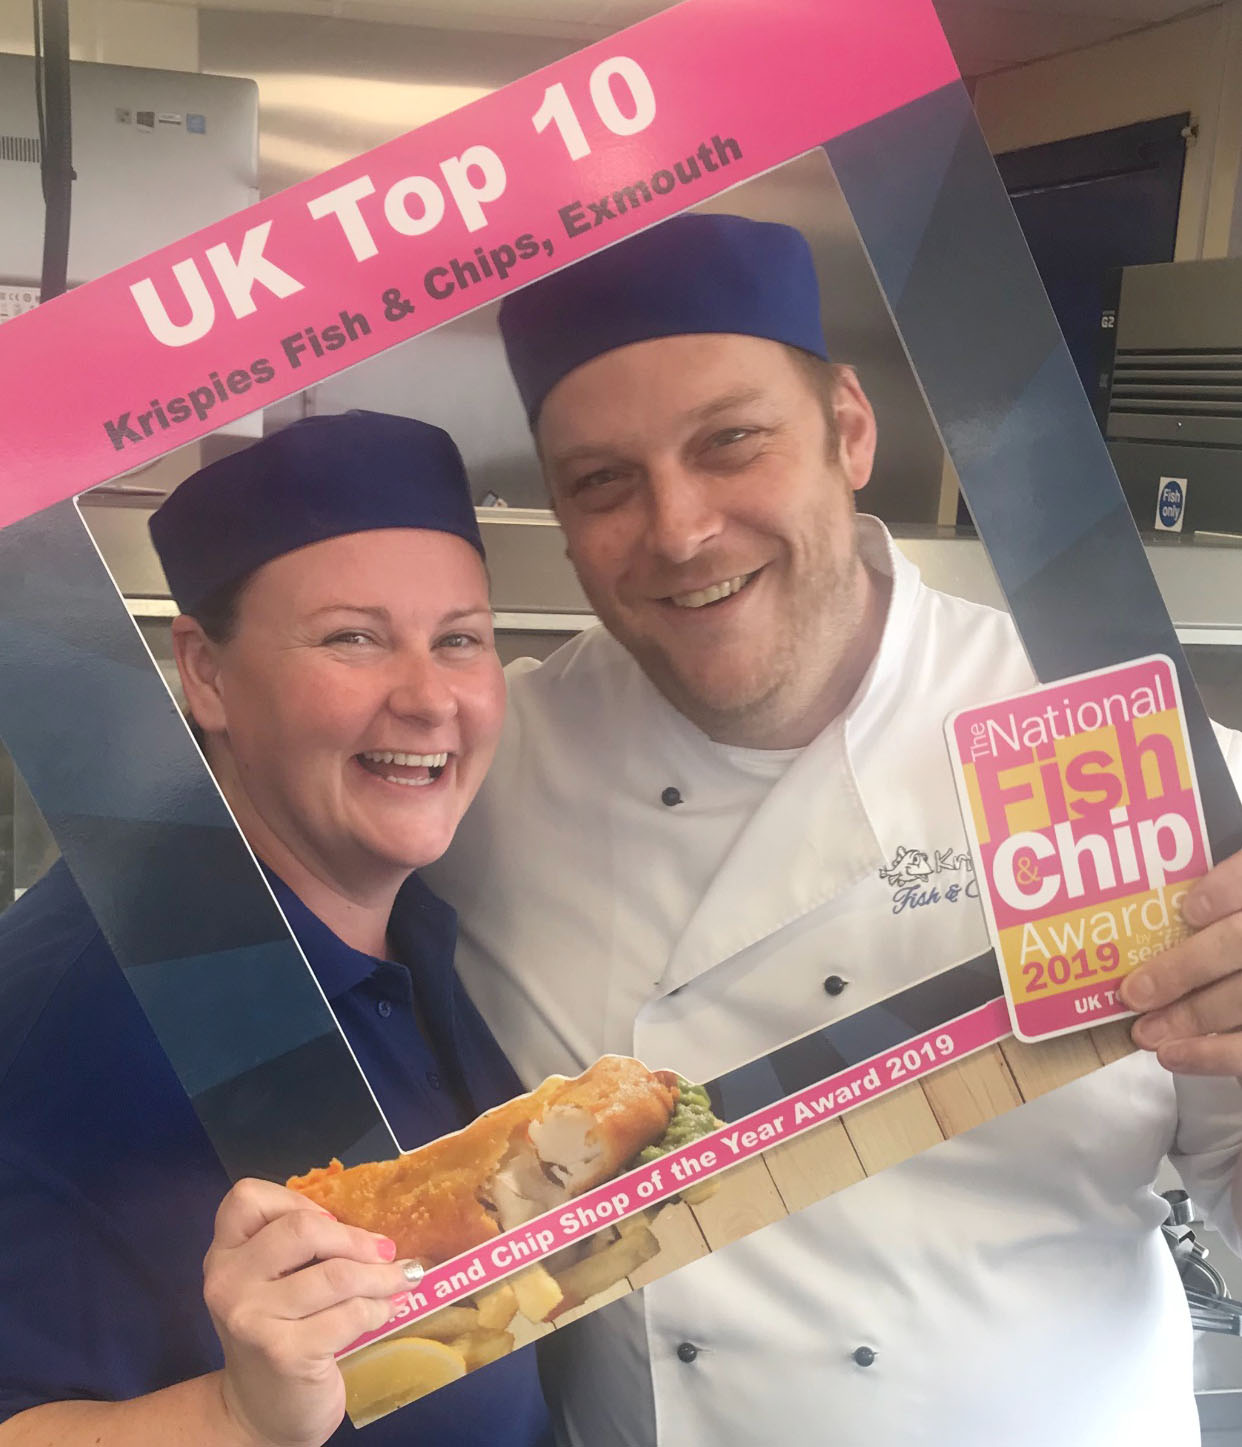 We are delighted to be the Top 10 Fish & Chip shops in the whole of the UK. In January we will find out if we have won the whole thing!